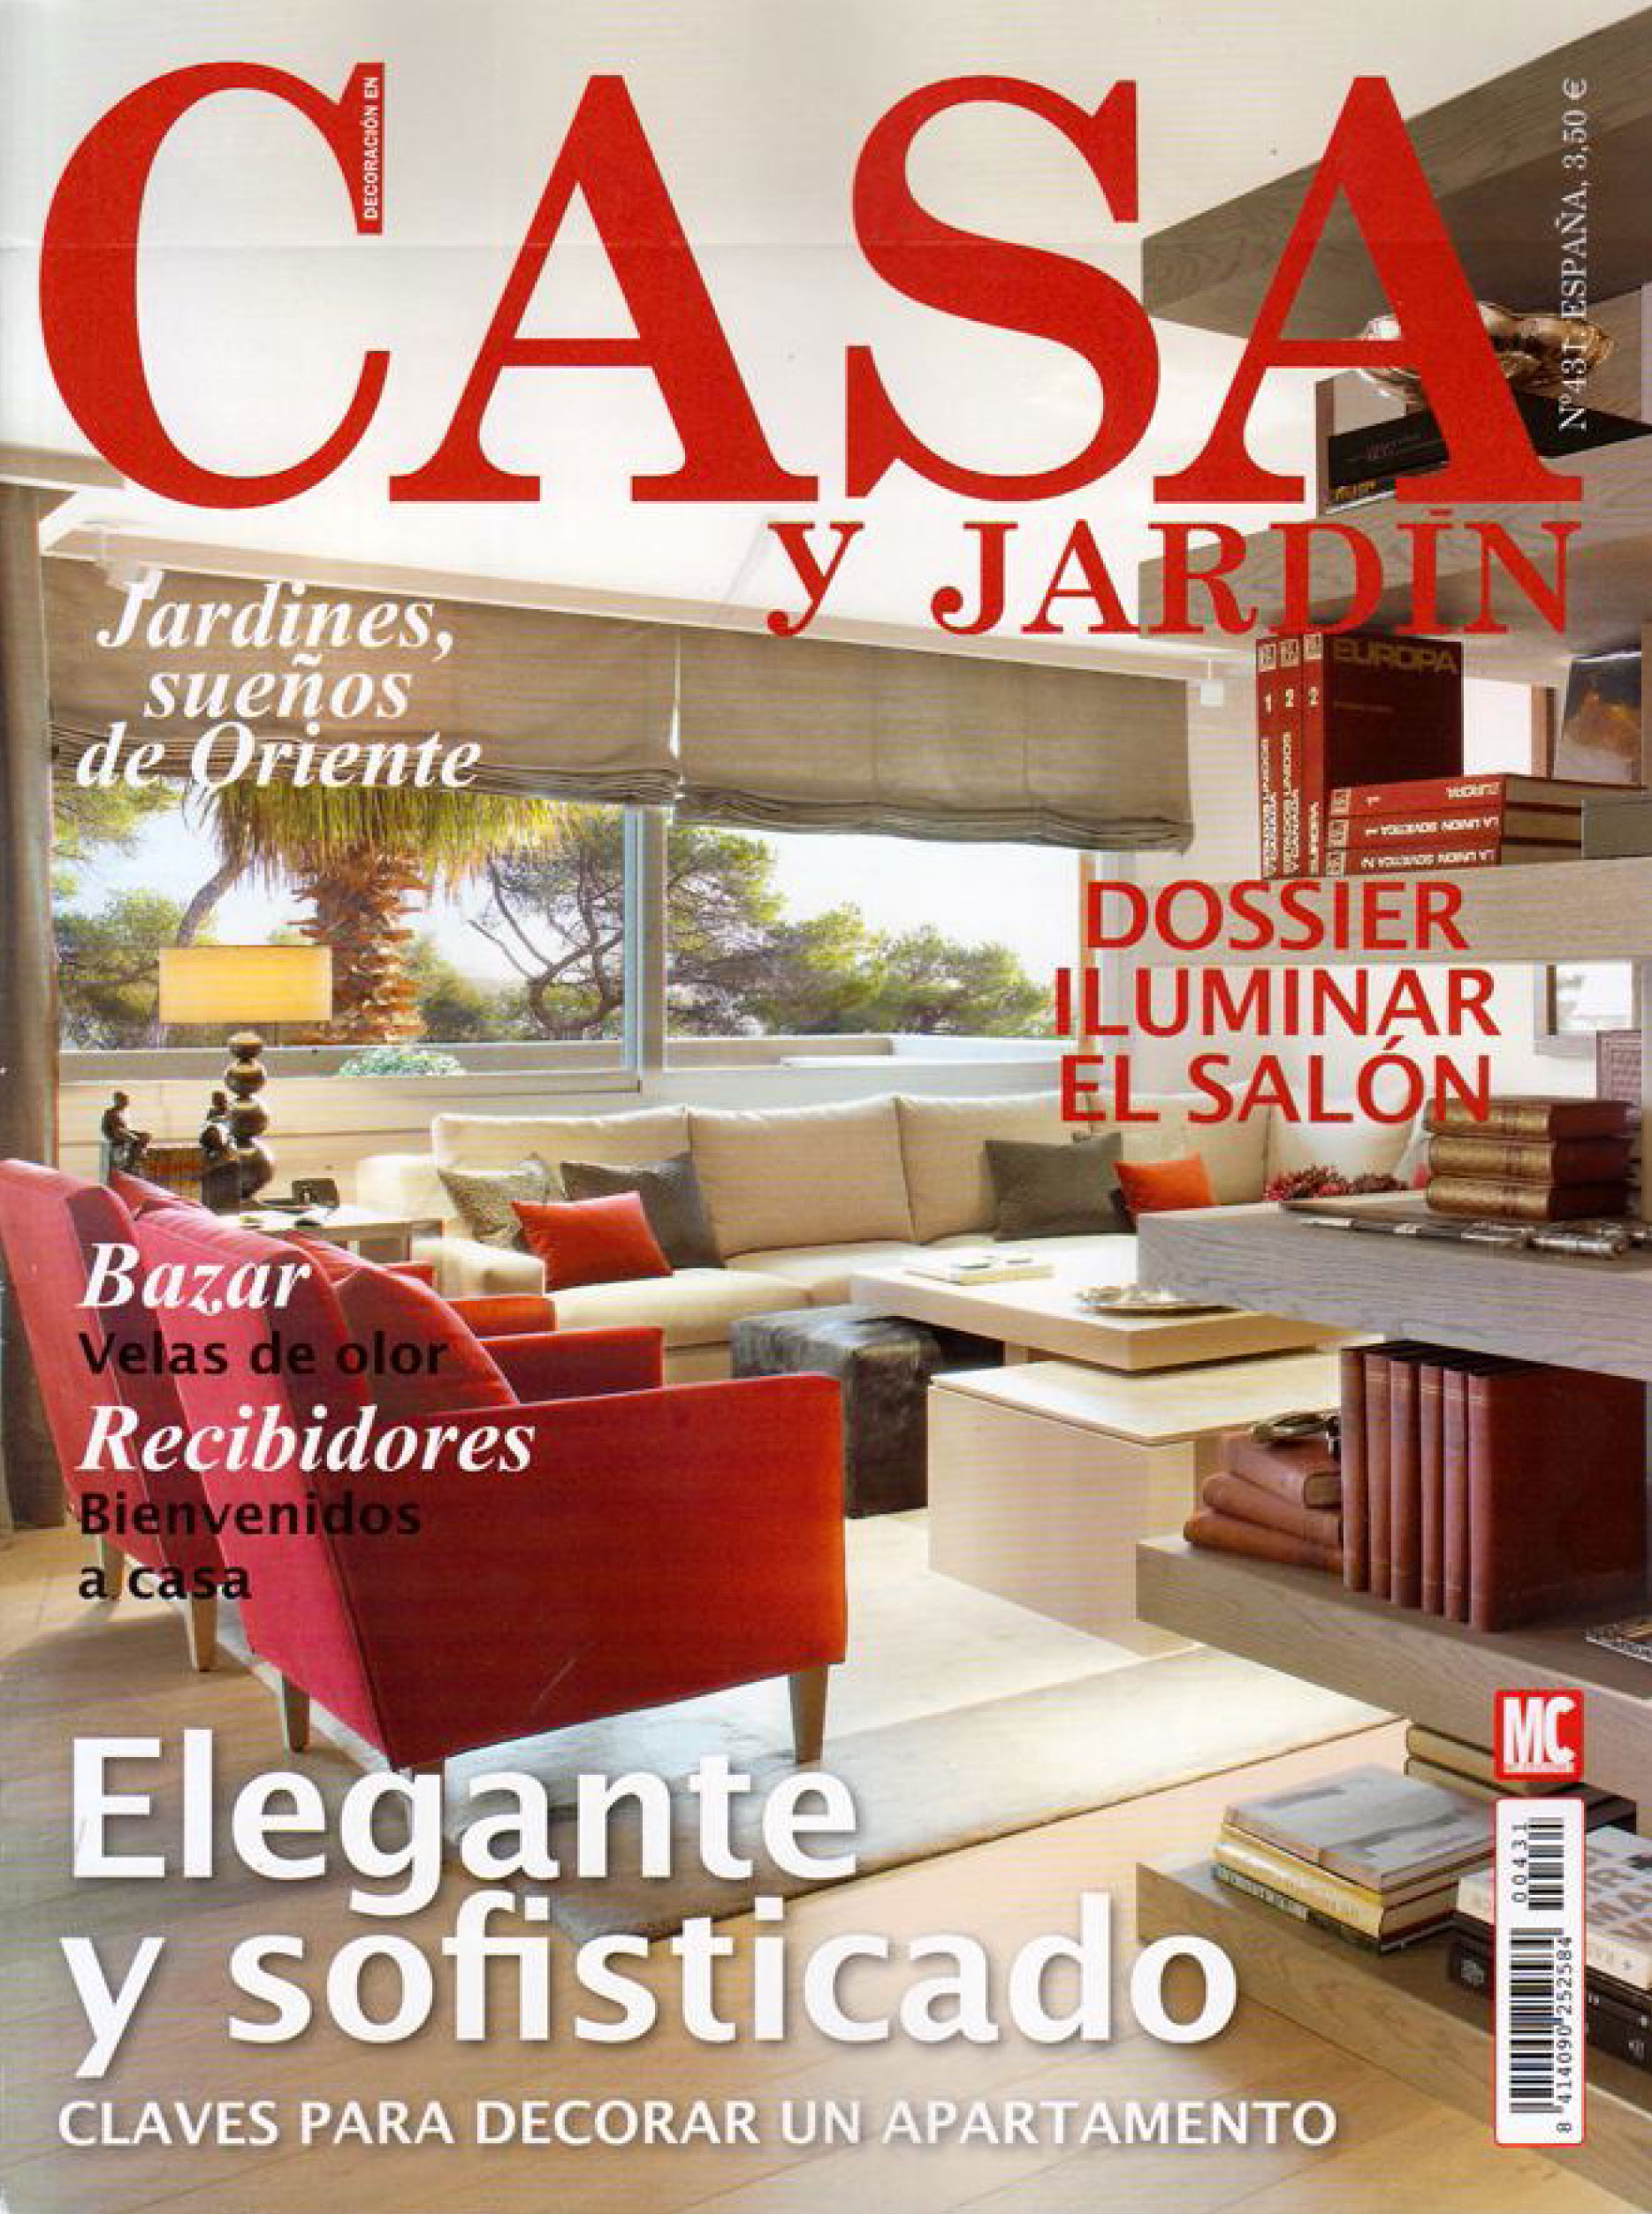 Apariciones en prensa de enero 2014 friendly cooking for Casa y jardin revista pdf